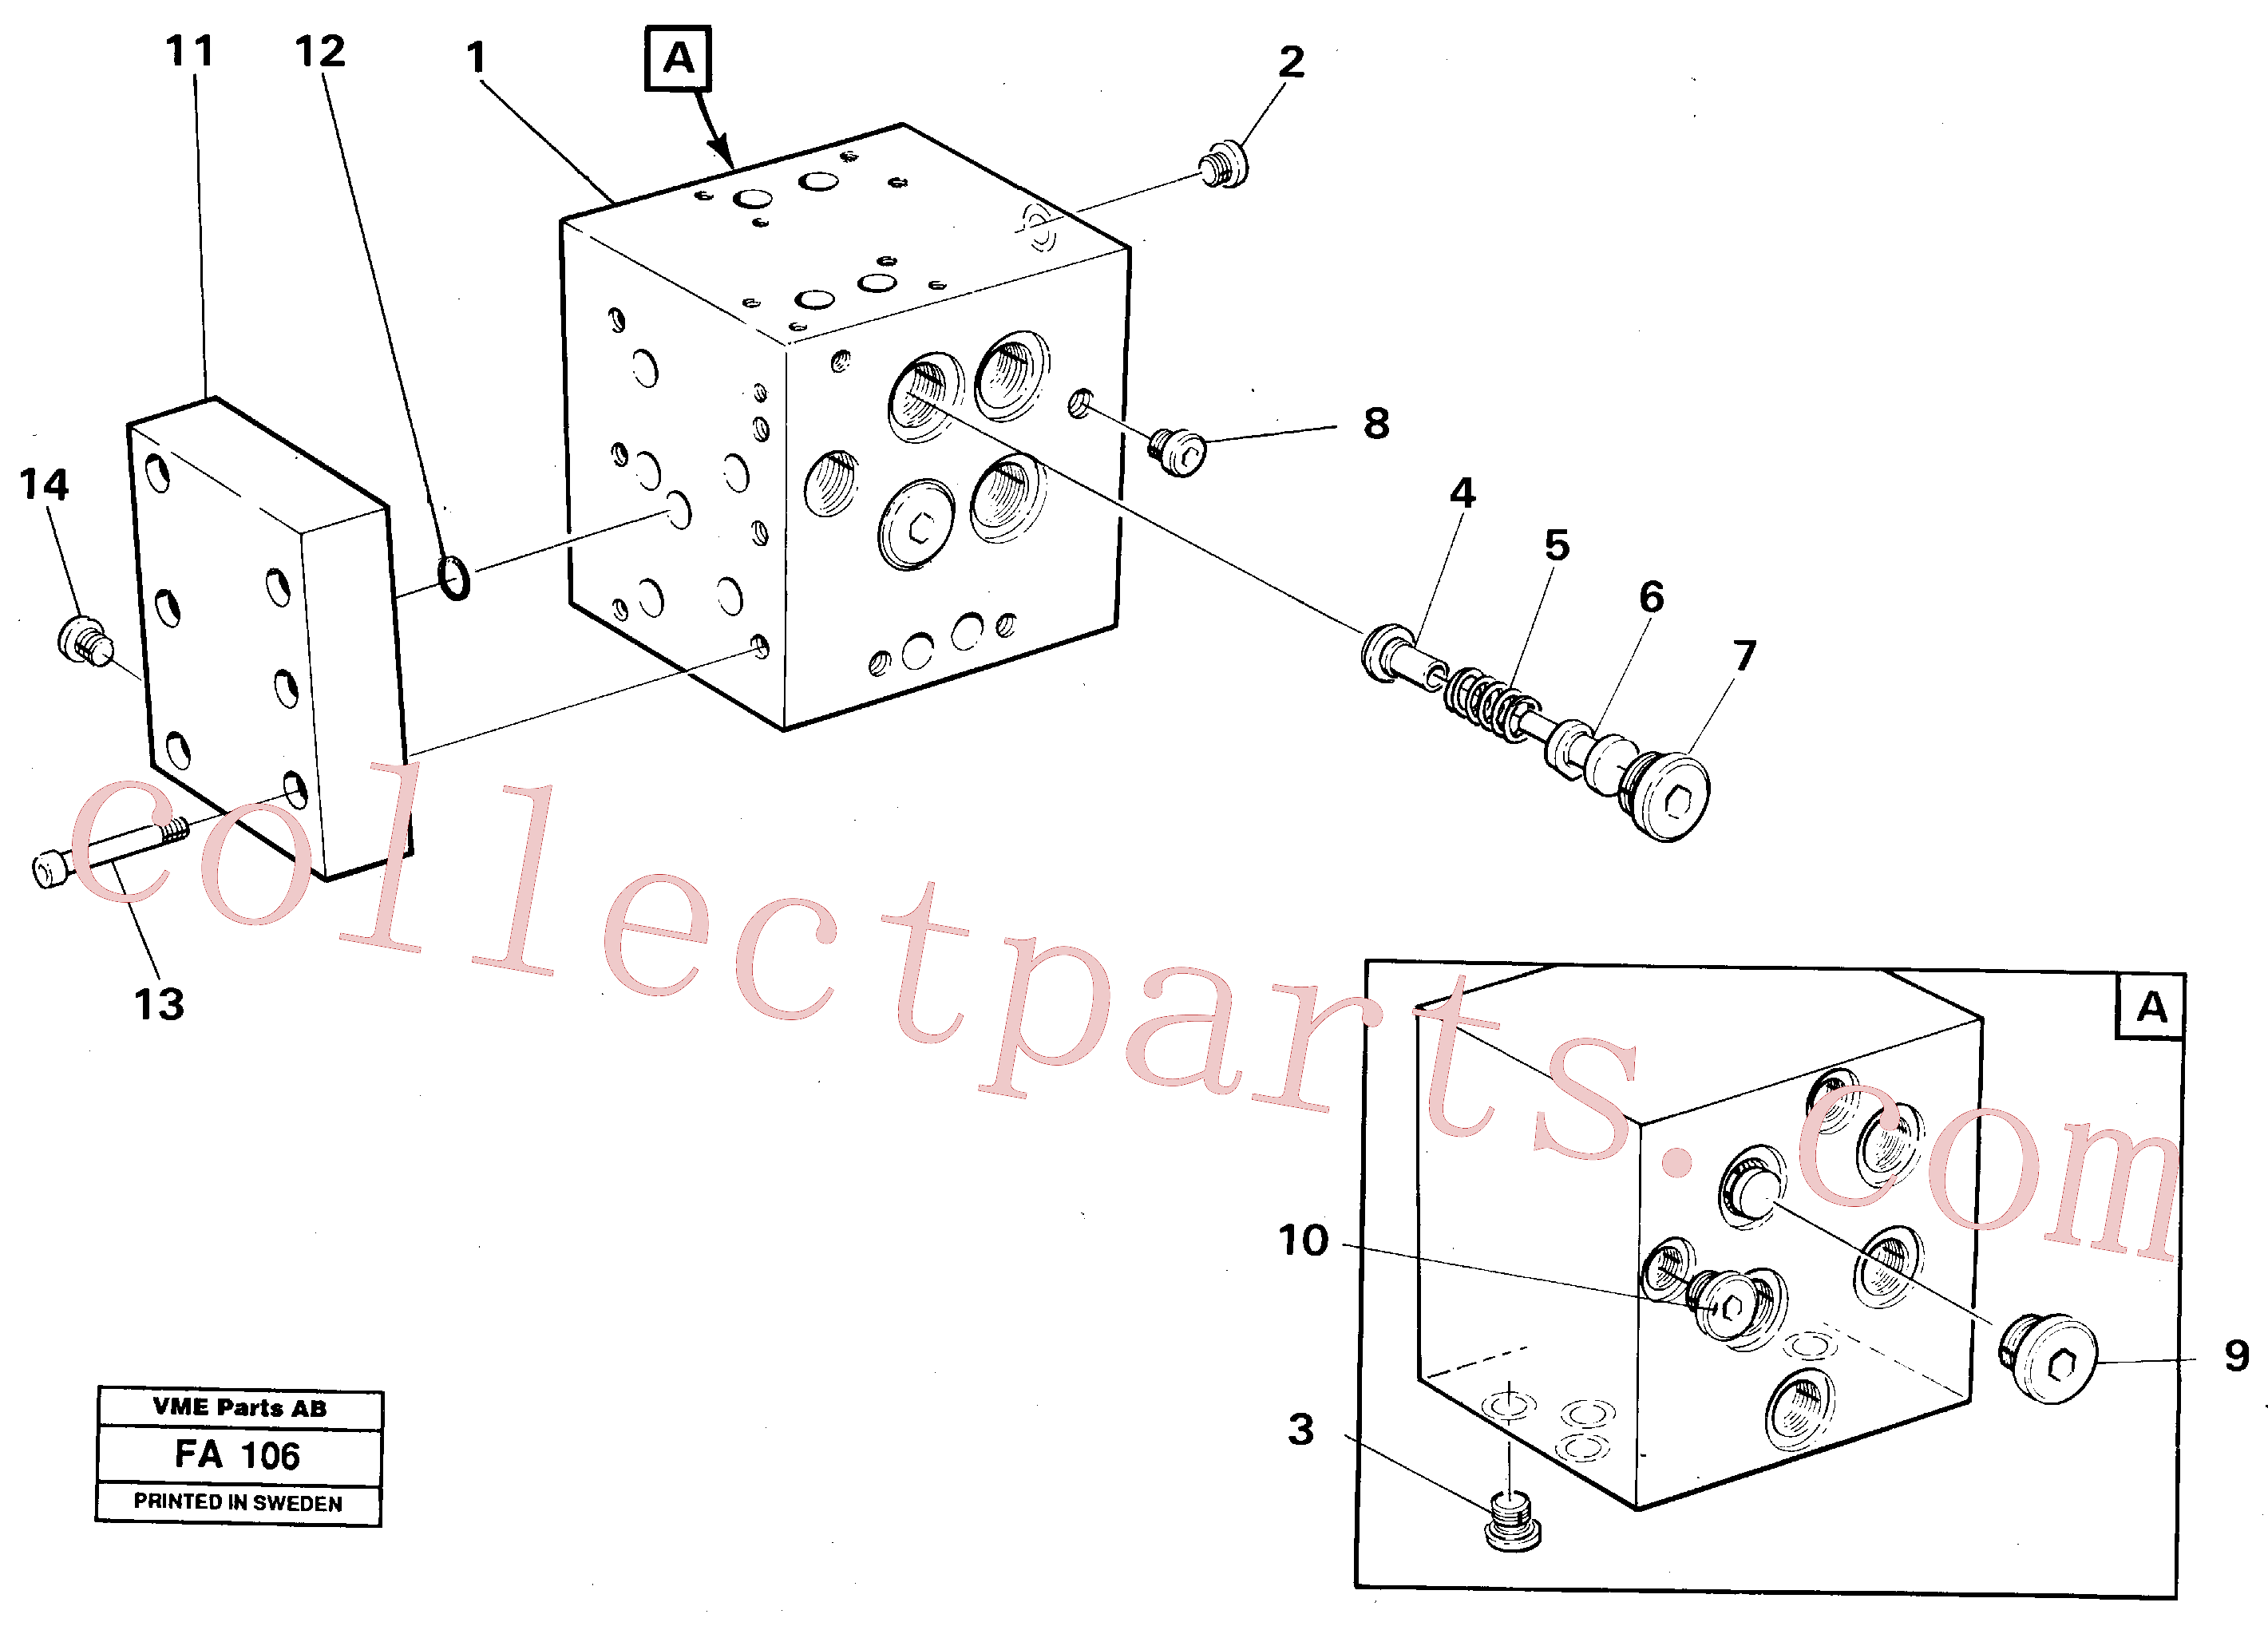 VOE14049071 for Volvo Slew valve block(FA106 assembly)